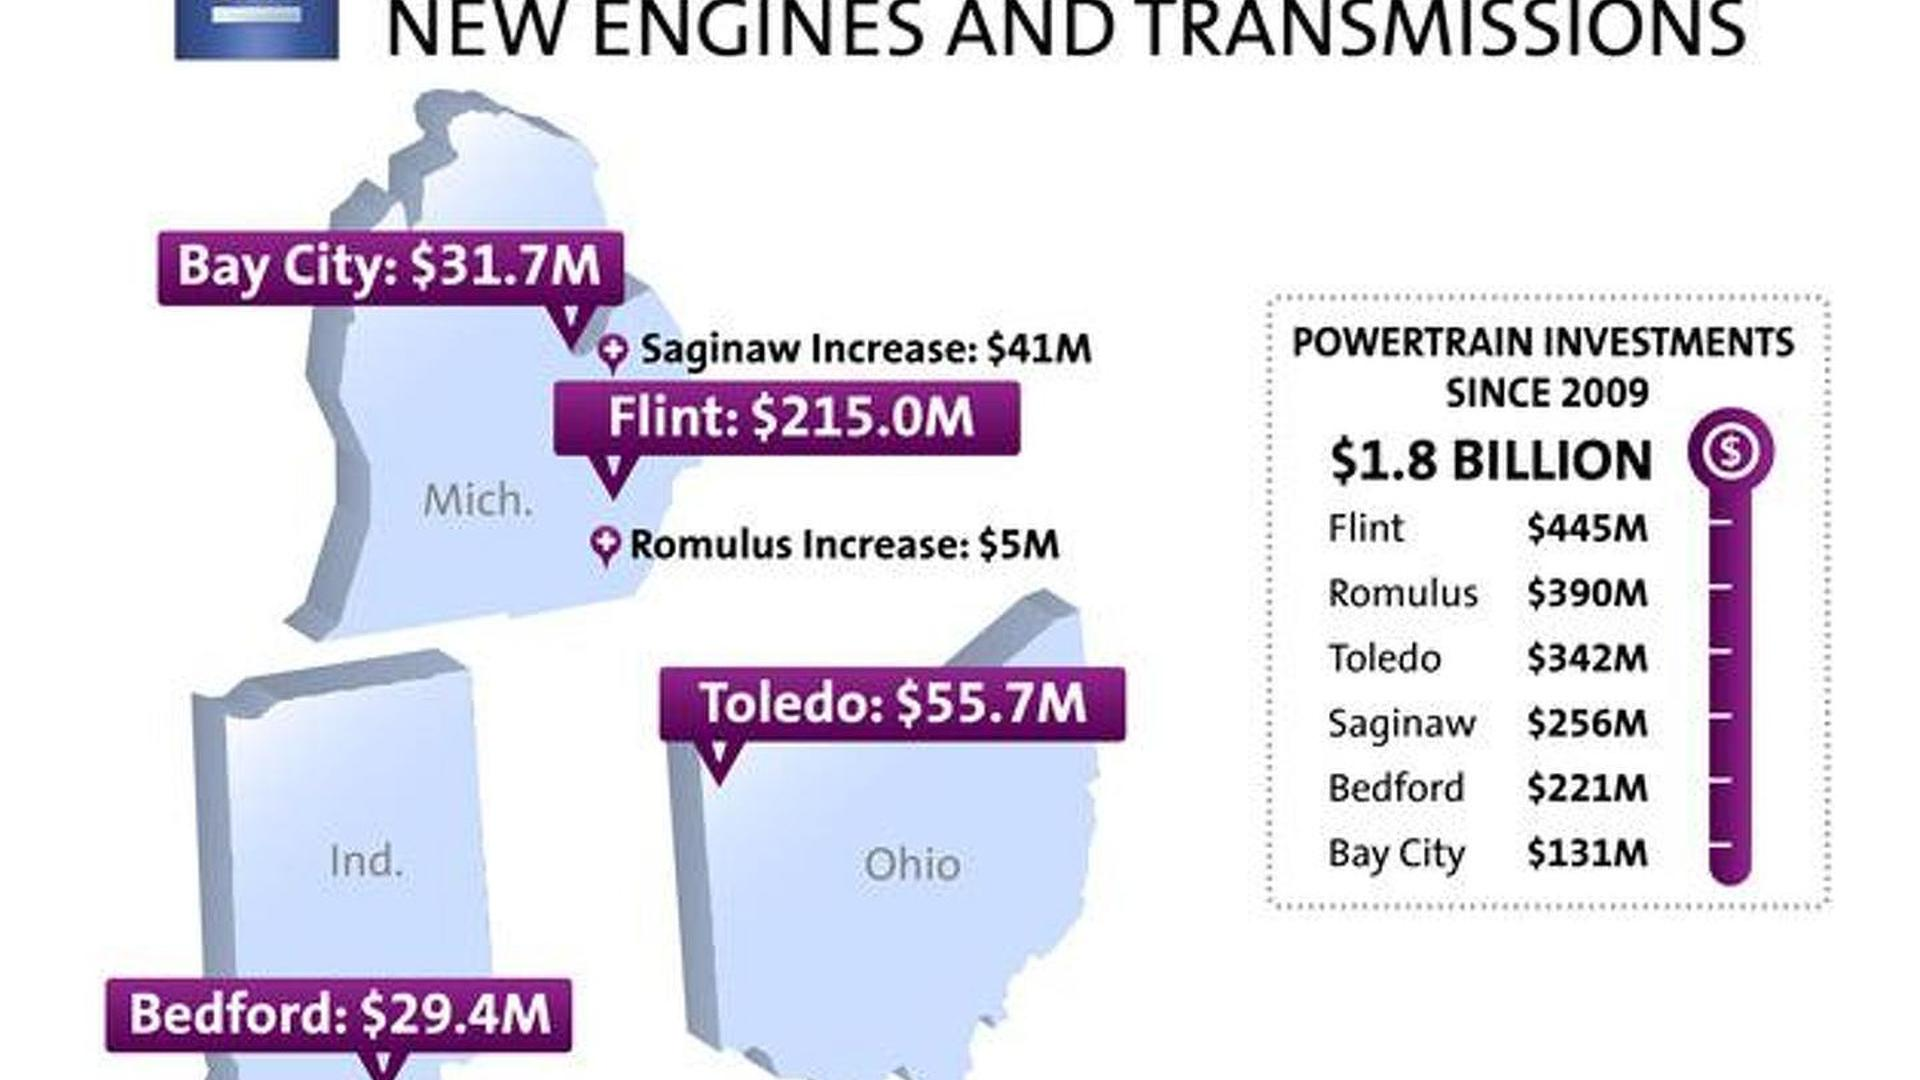 General Motors confirms investing 332M to make more efficient engines and transmissions in U.S.